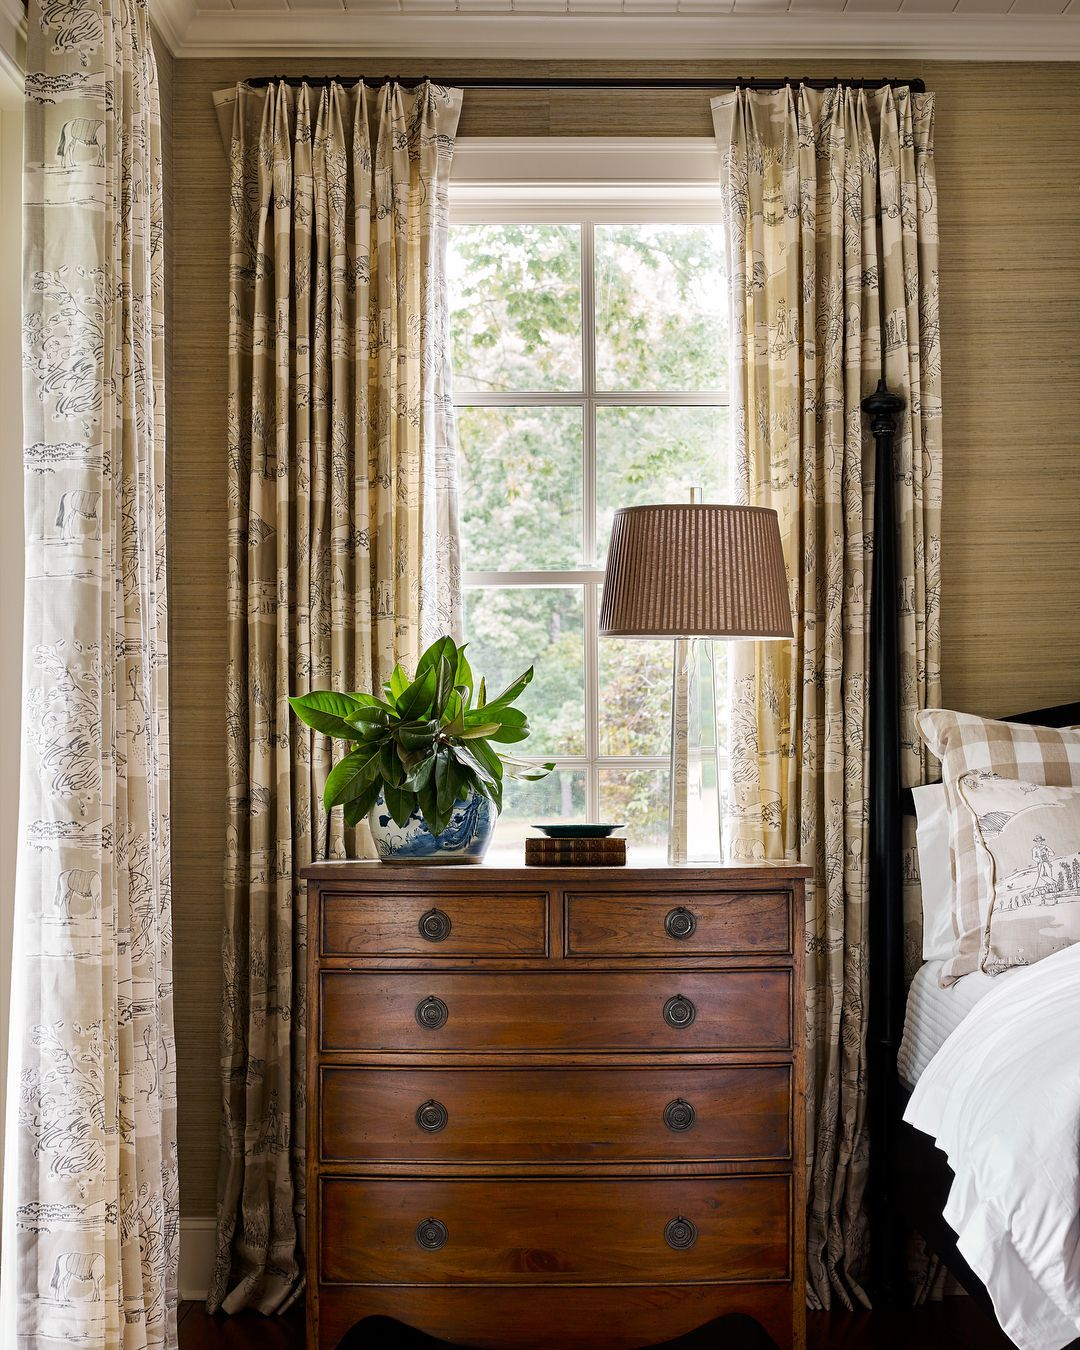 Classic and vintage farmhouse bedroom ideas 24